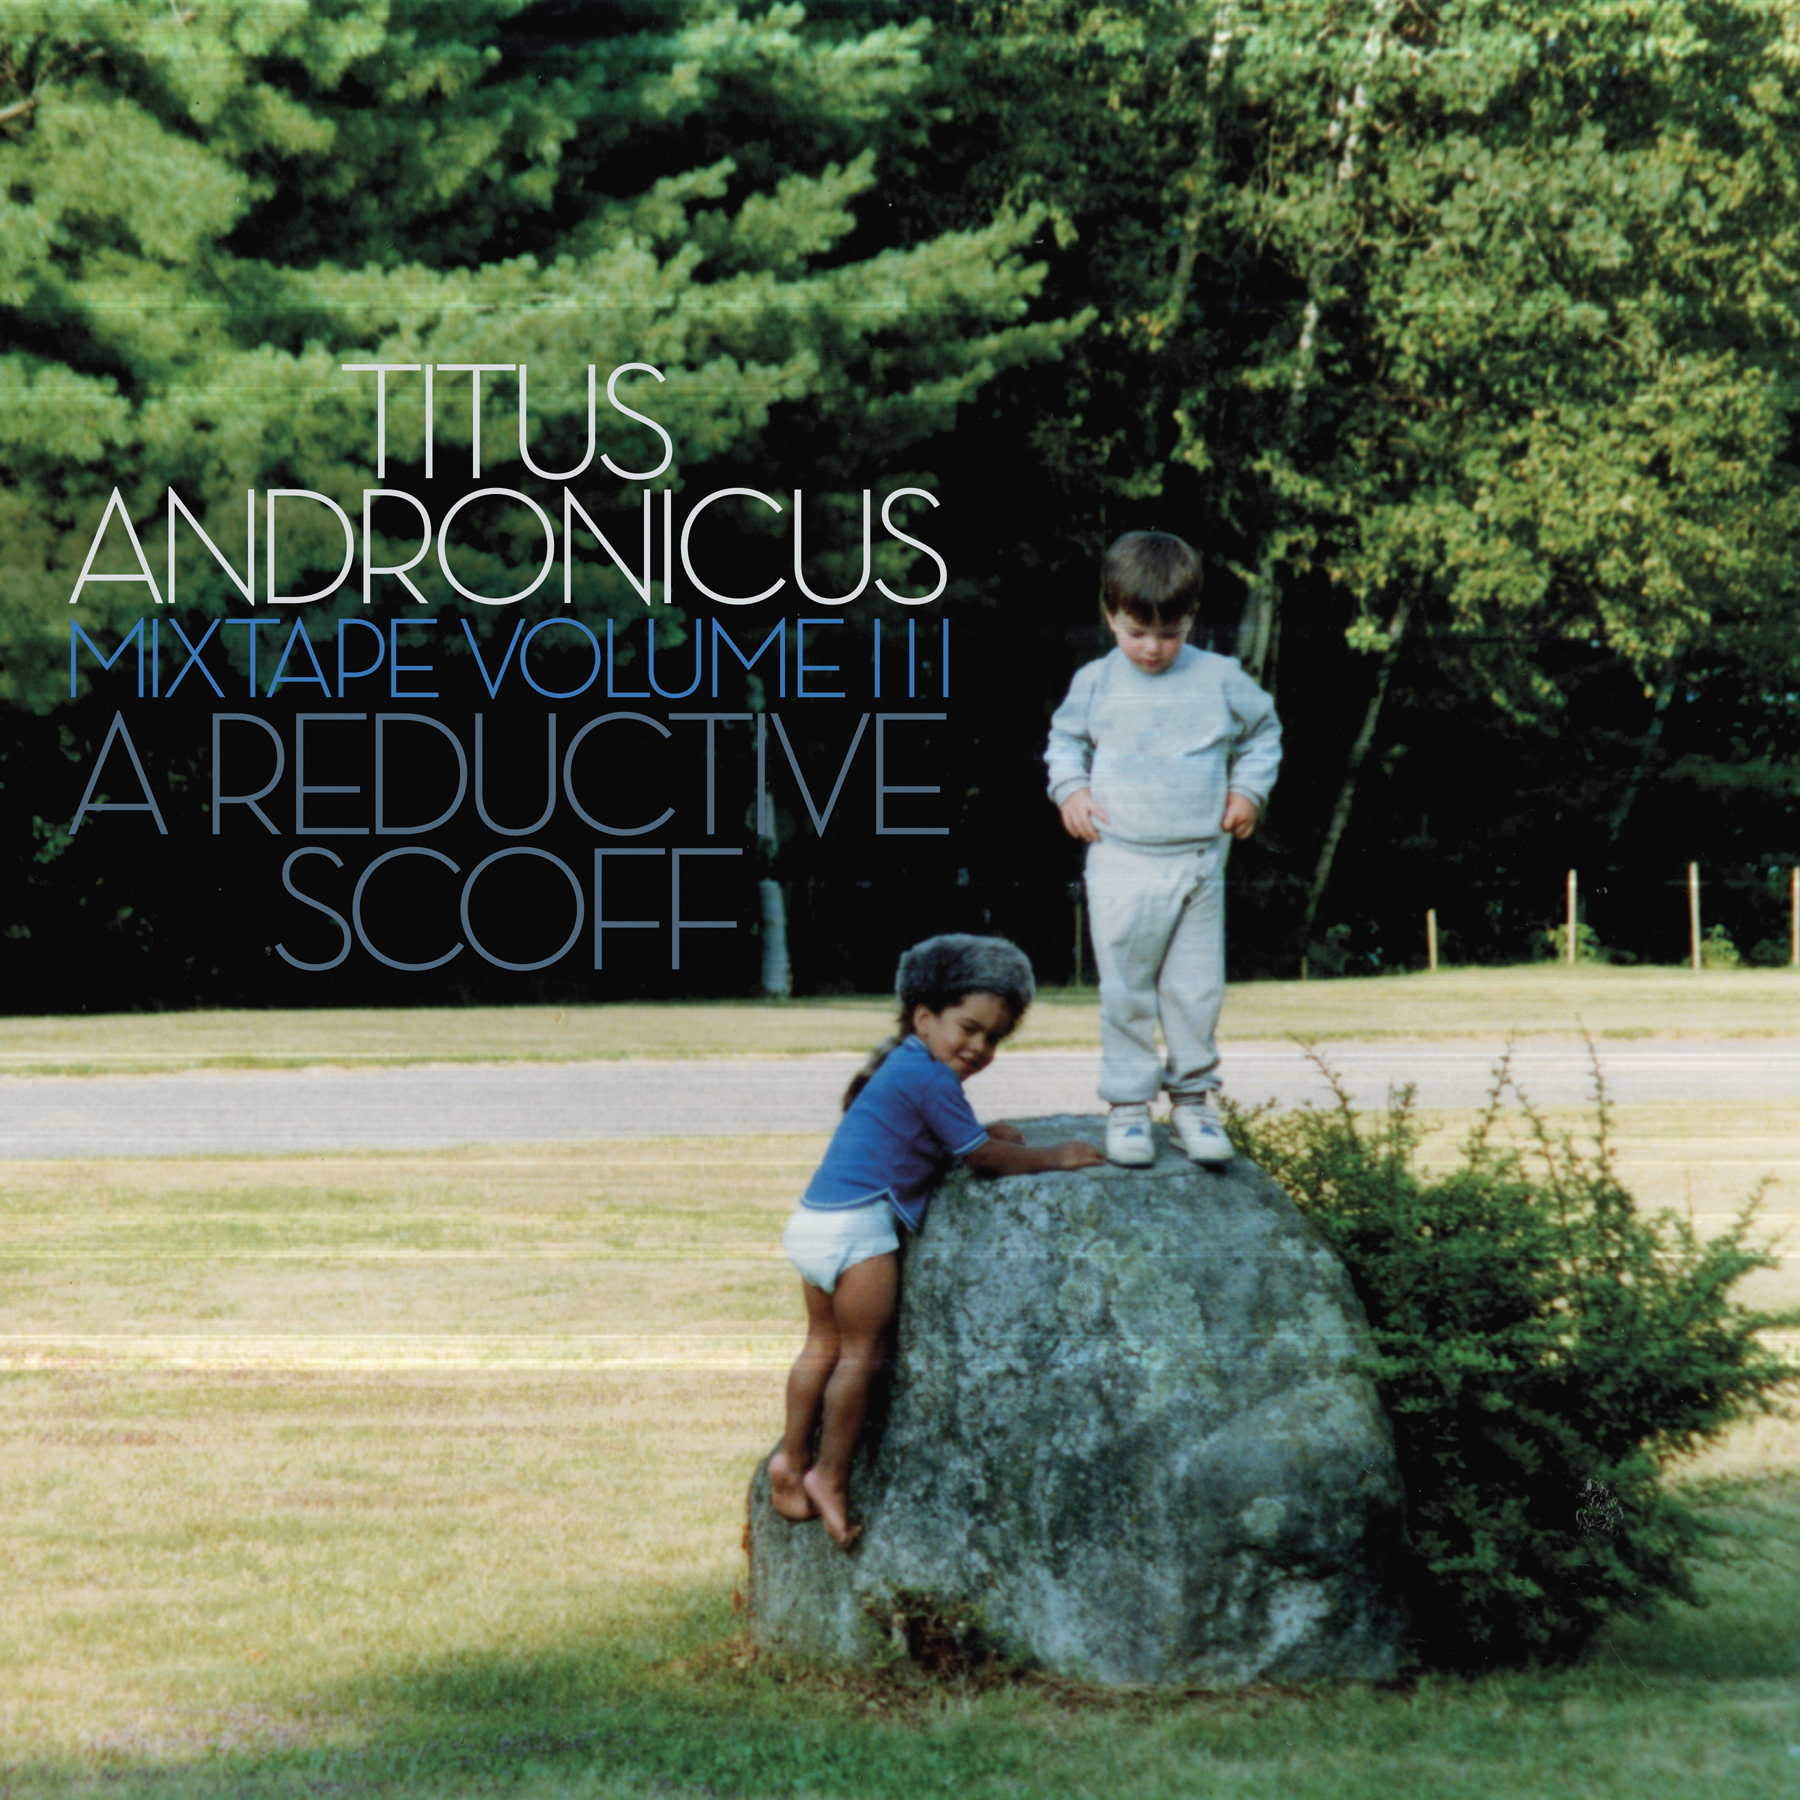 Titus Andronicus Mixtape Volume III A Reductive Scoff Album Cover Artwork